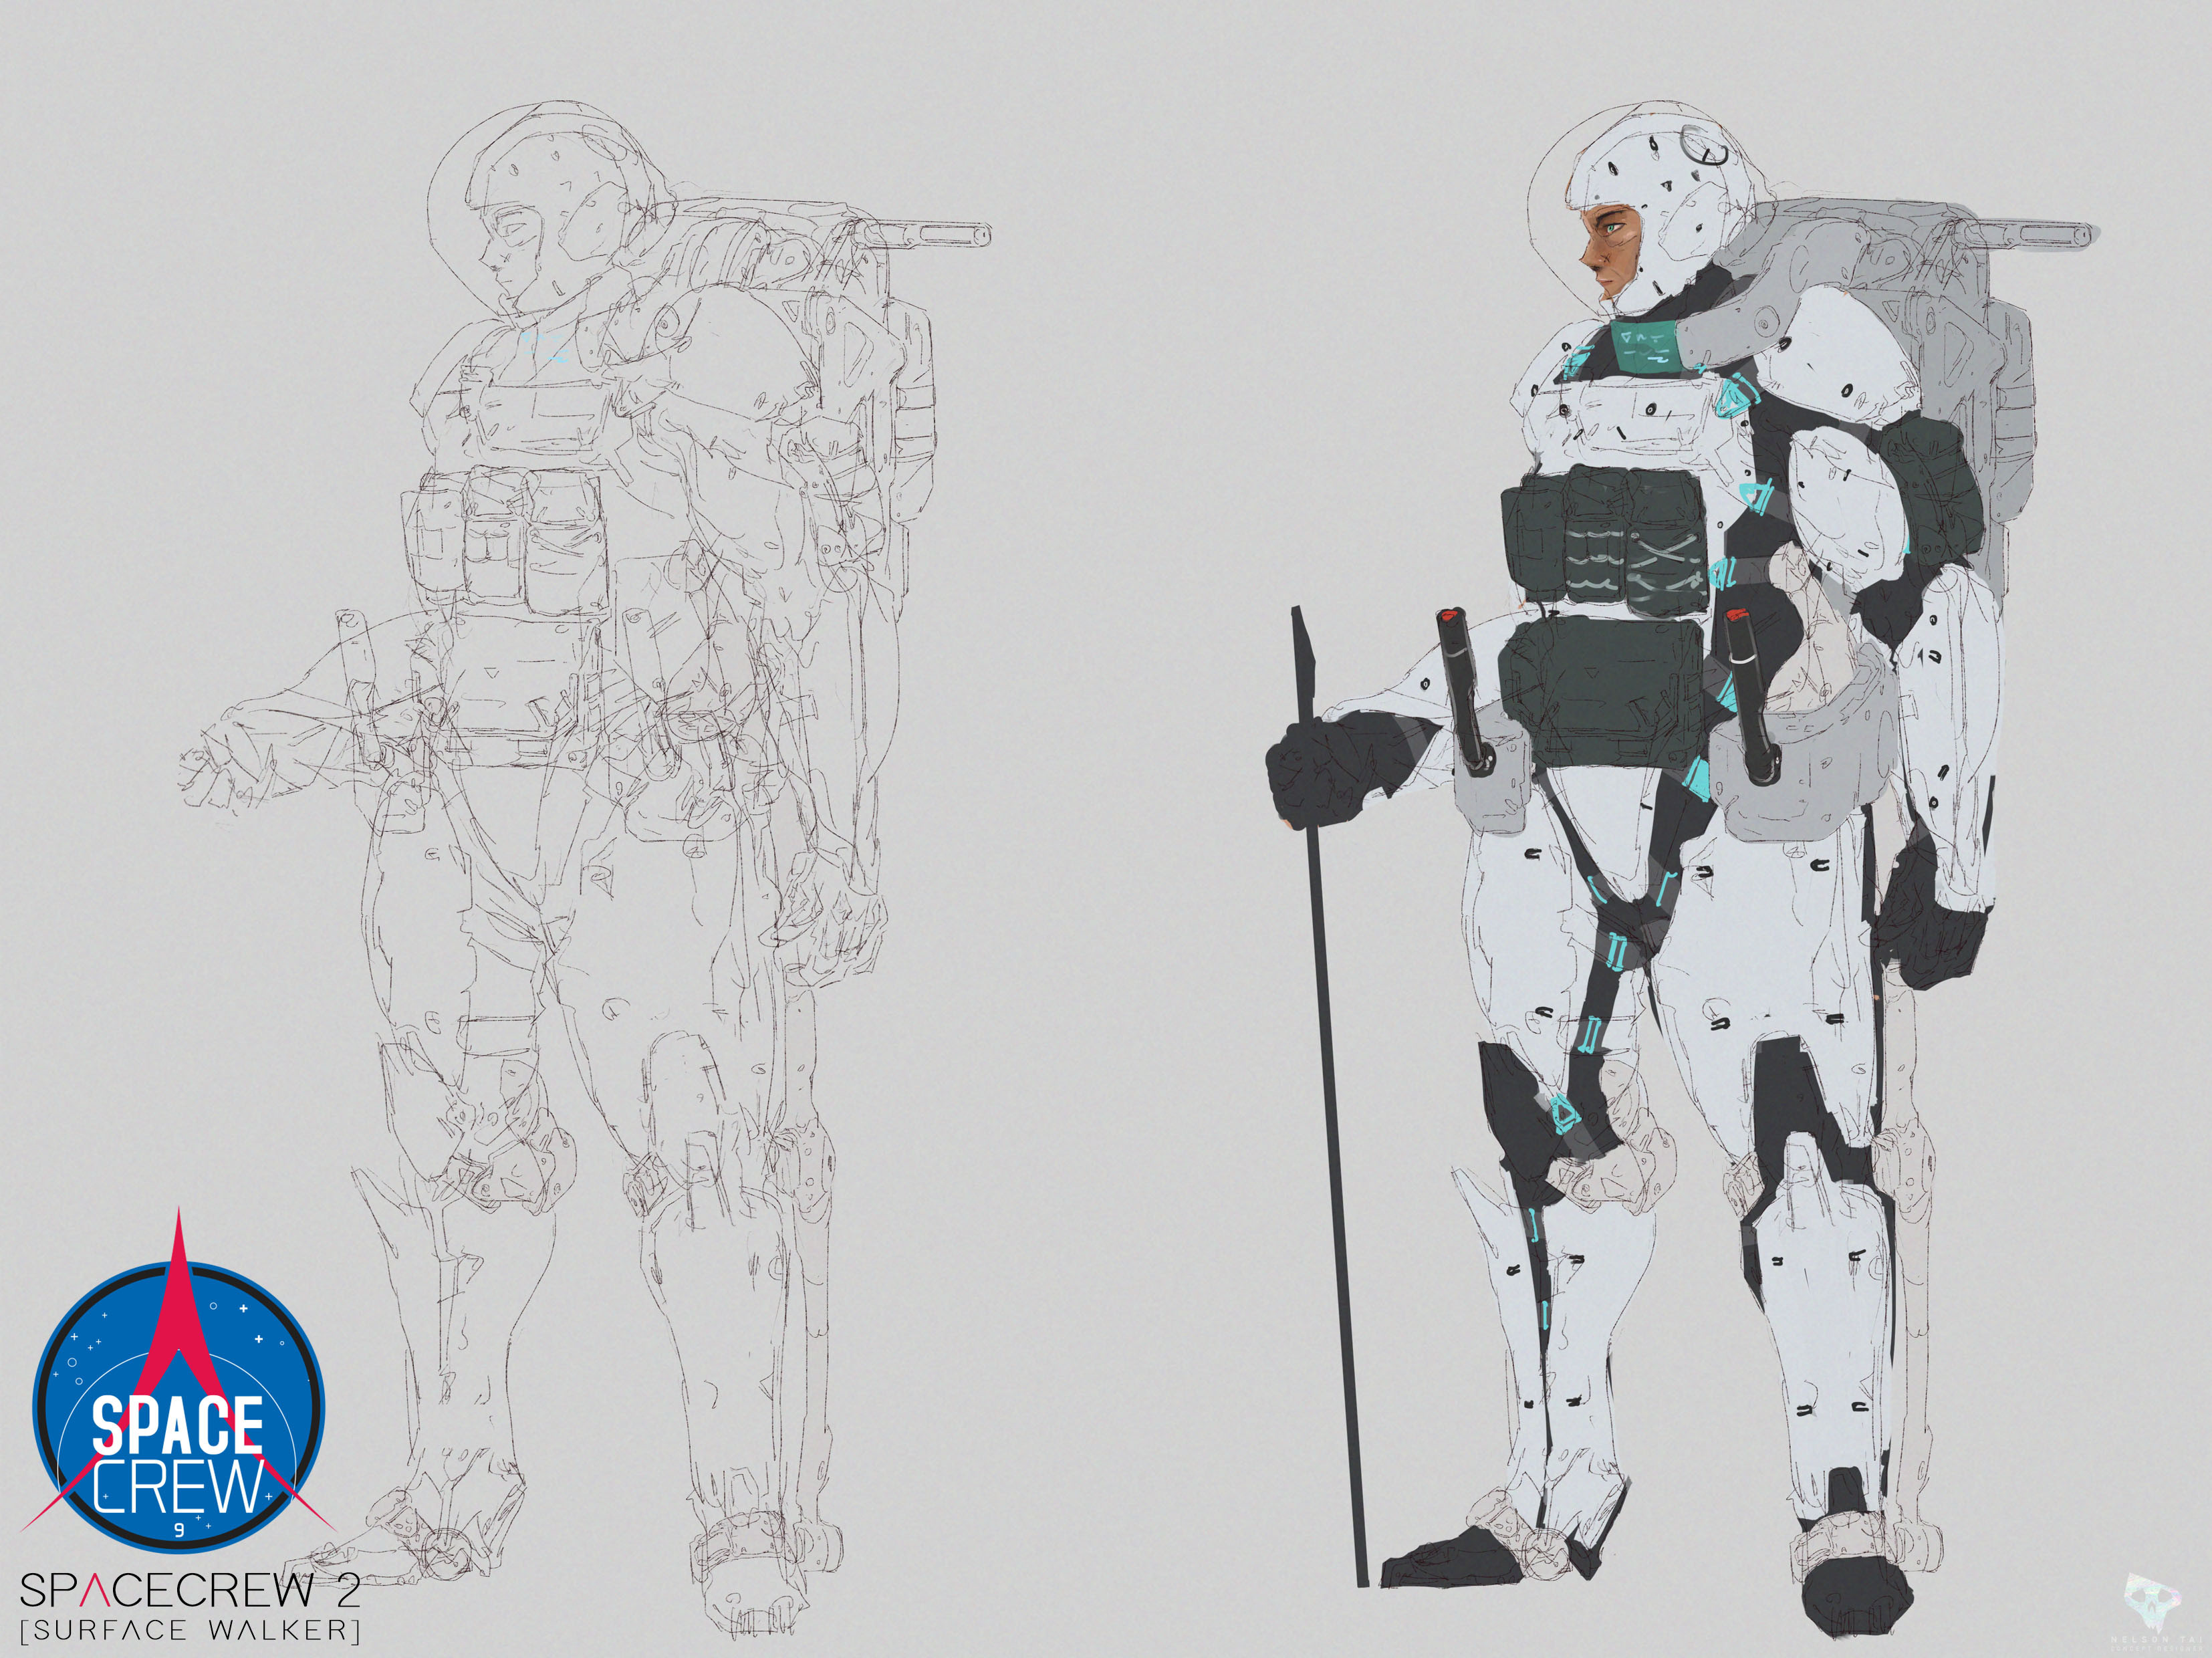 Initial sketch and color blocking. (1-2 hr to explore)